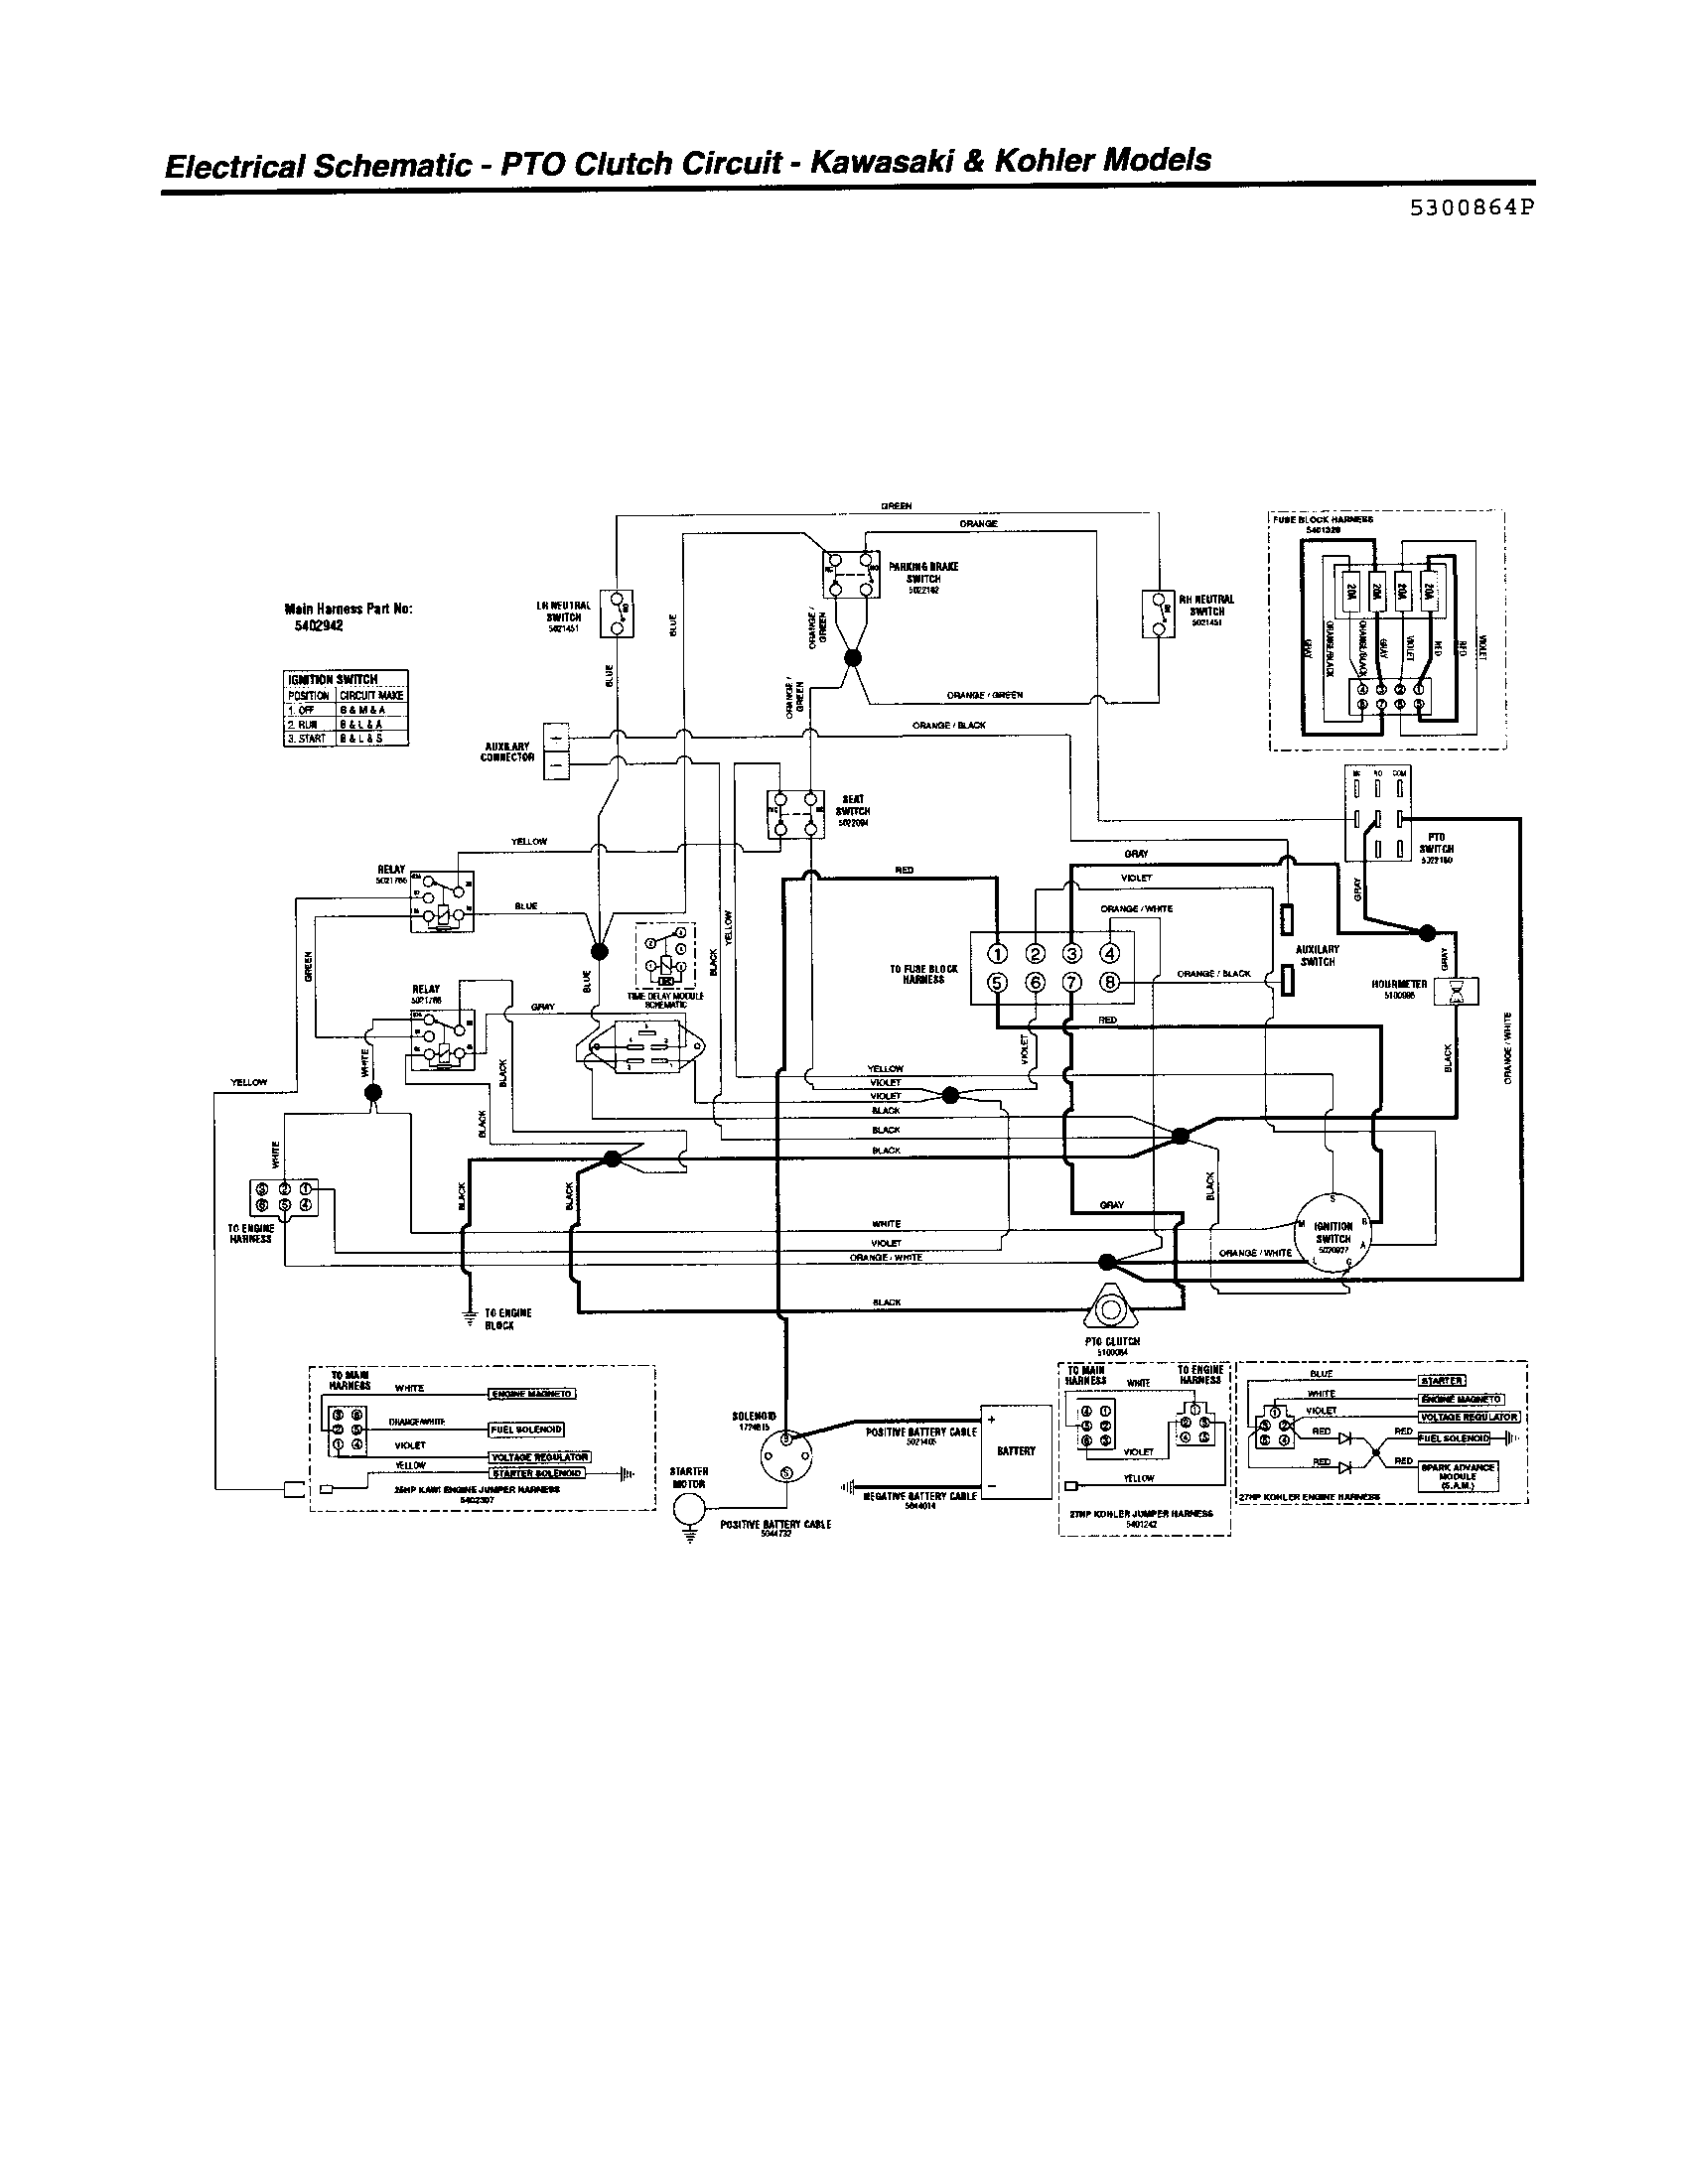 edd203c96939fe65be99faf05b27f9f2 country clipper jazee mowers wiring diagrams country clipper avital 3100 car alarm wiring diagram at eliteediting.co